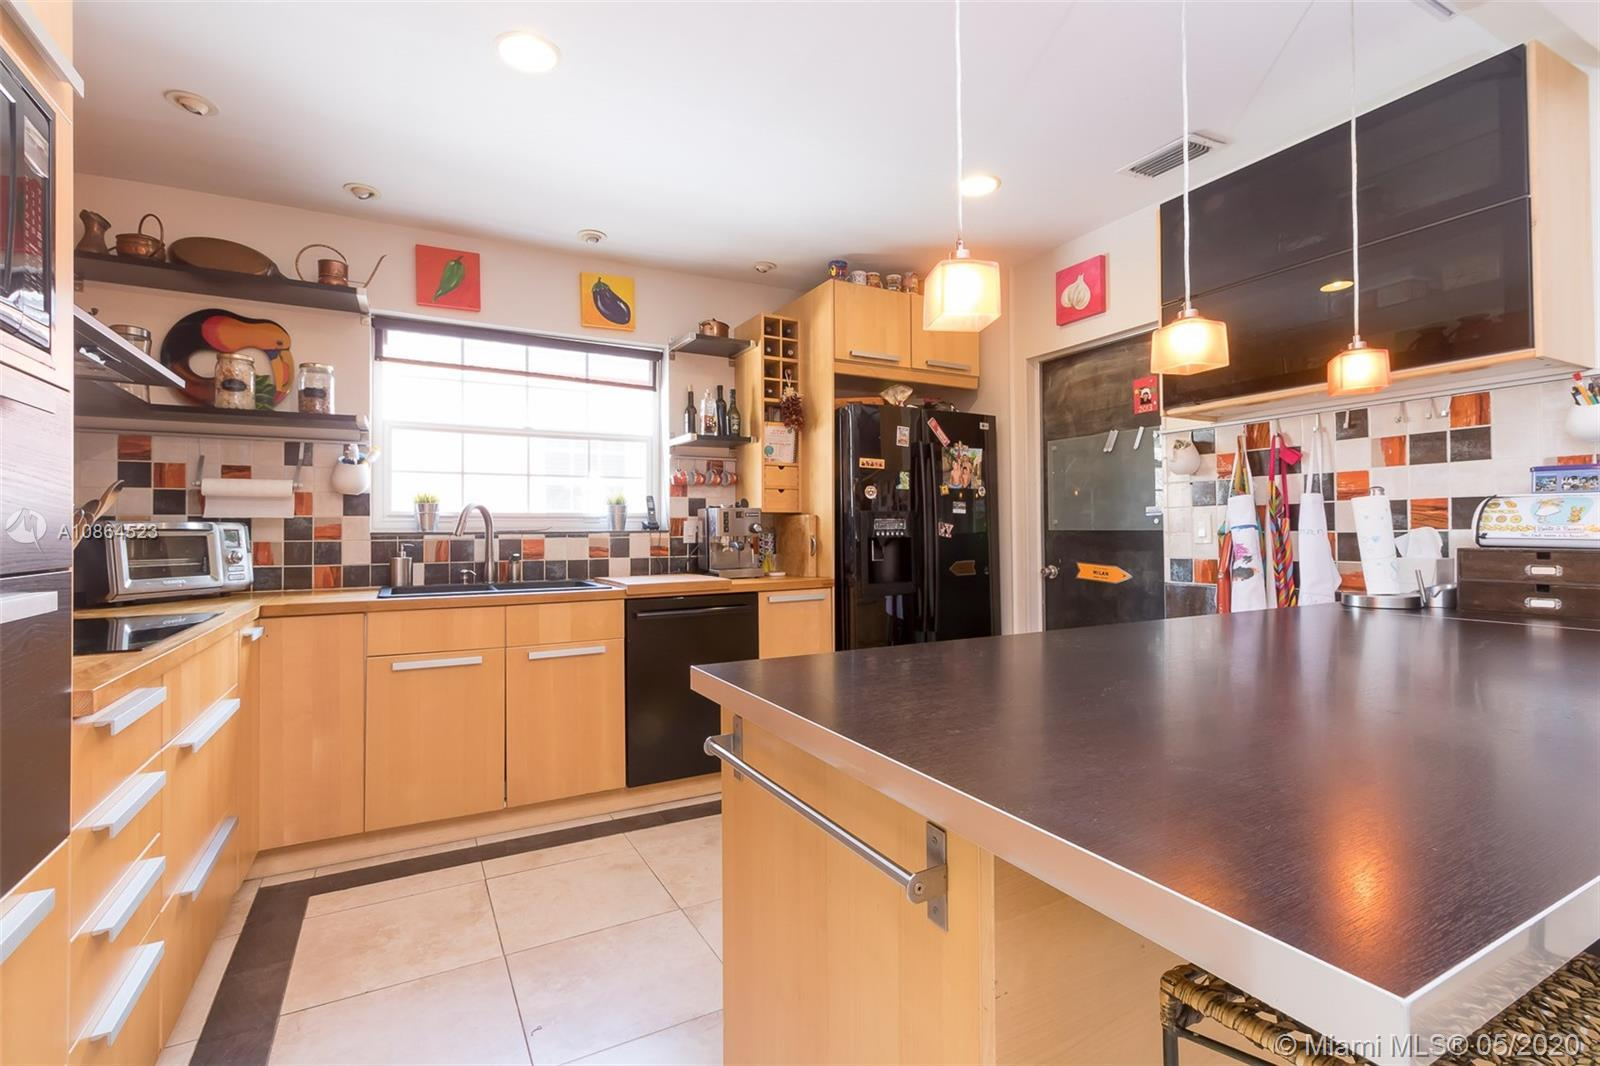 Spectacular 4 bedrooms and 2 bathrooms single family house in a quiet neighborhood. Amazing upgrades